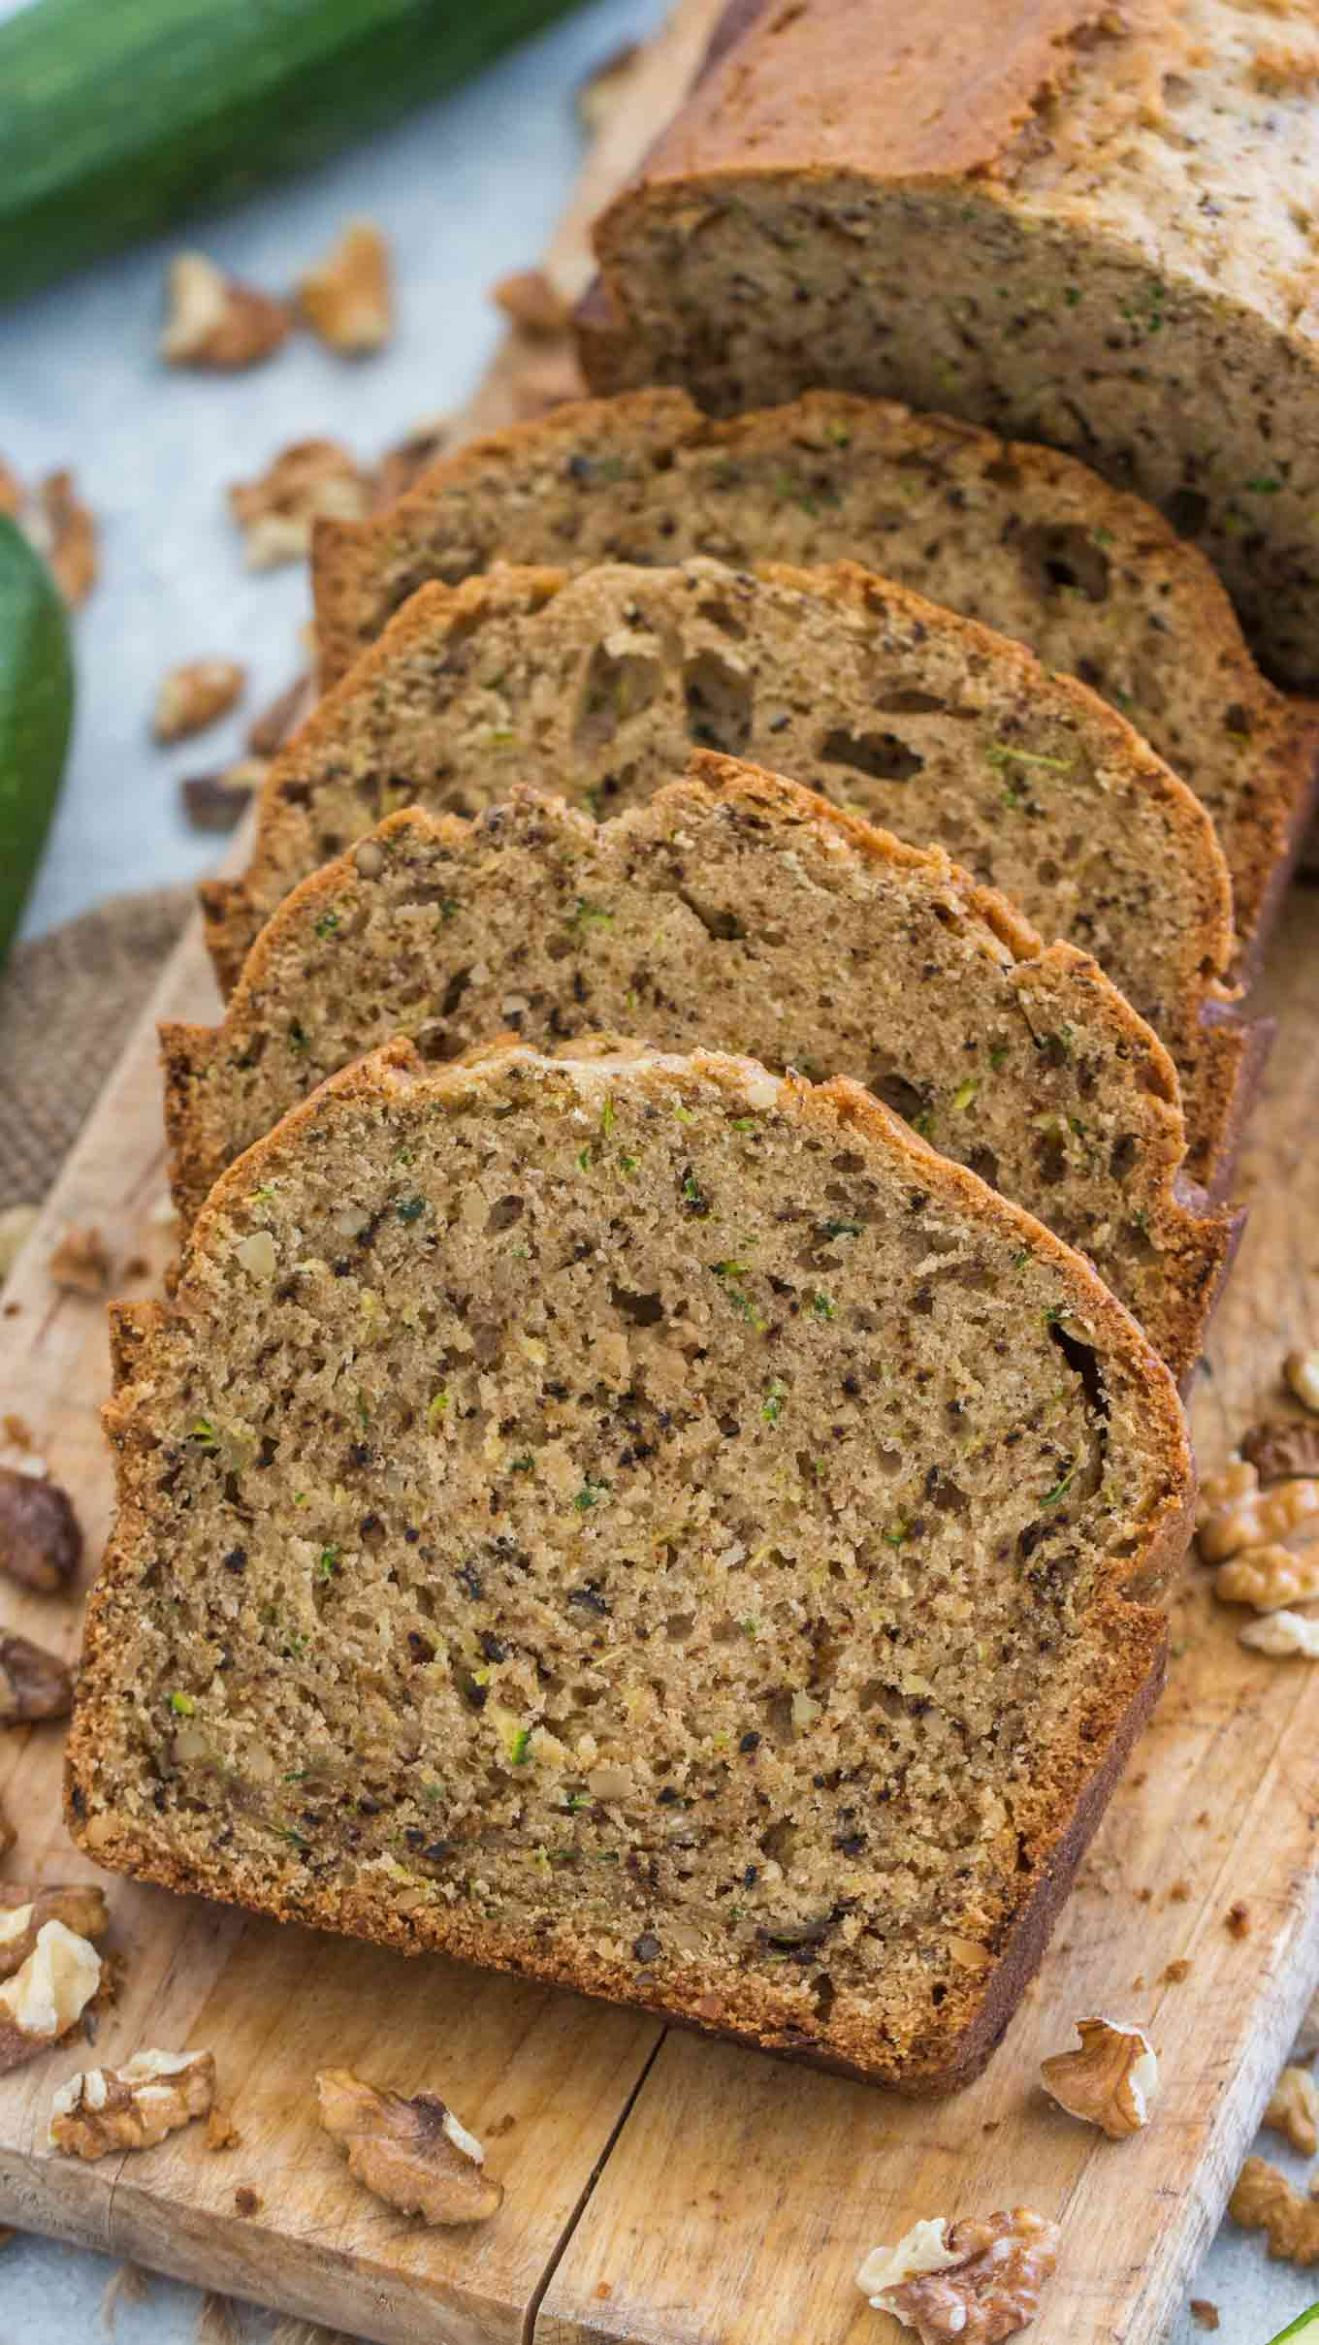 Easy Zucchini Bread Recipe [Video] - Sweet and Savory Meals